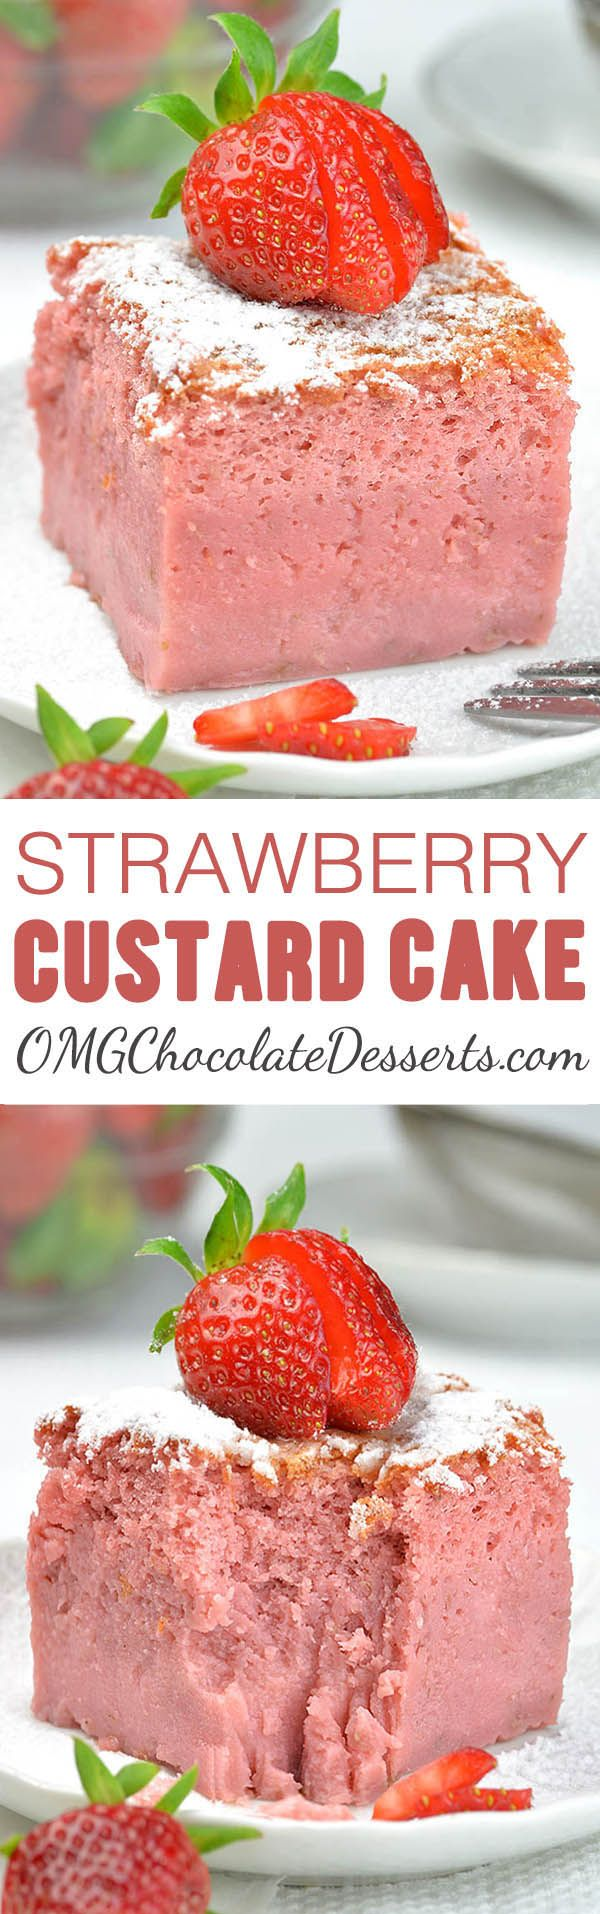 Strawberry Custard Cake is the best of all magic custard cakes I've ever tried. It's delicious, creamy and smooth and bursting with fresh strawberry flavor.